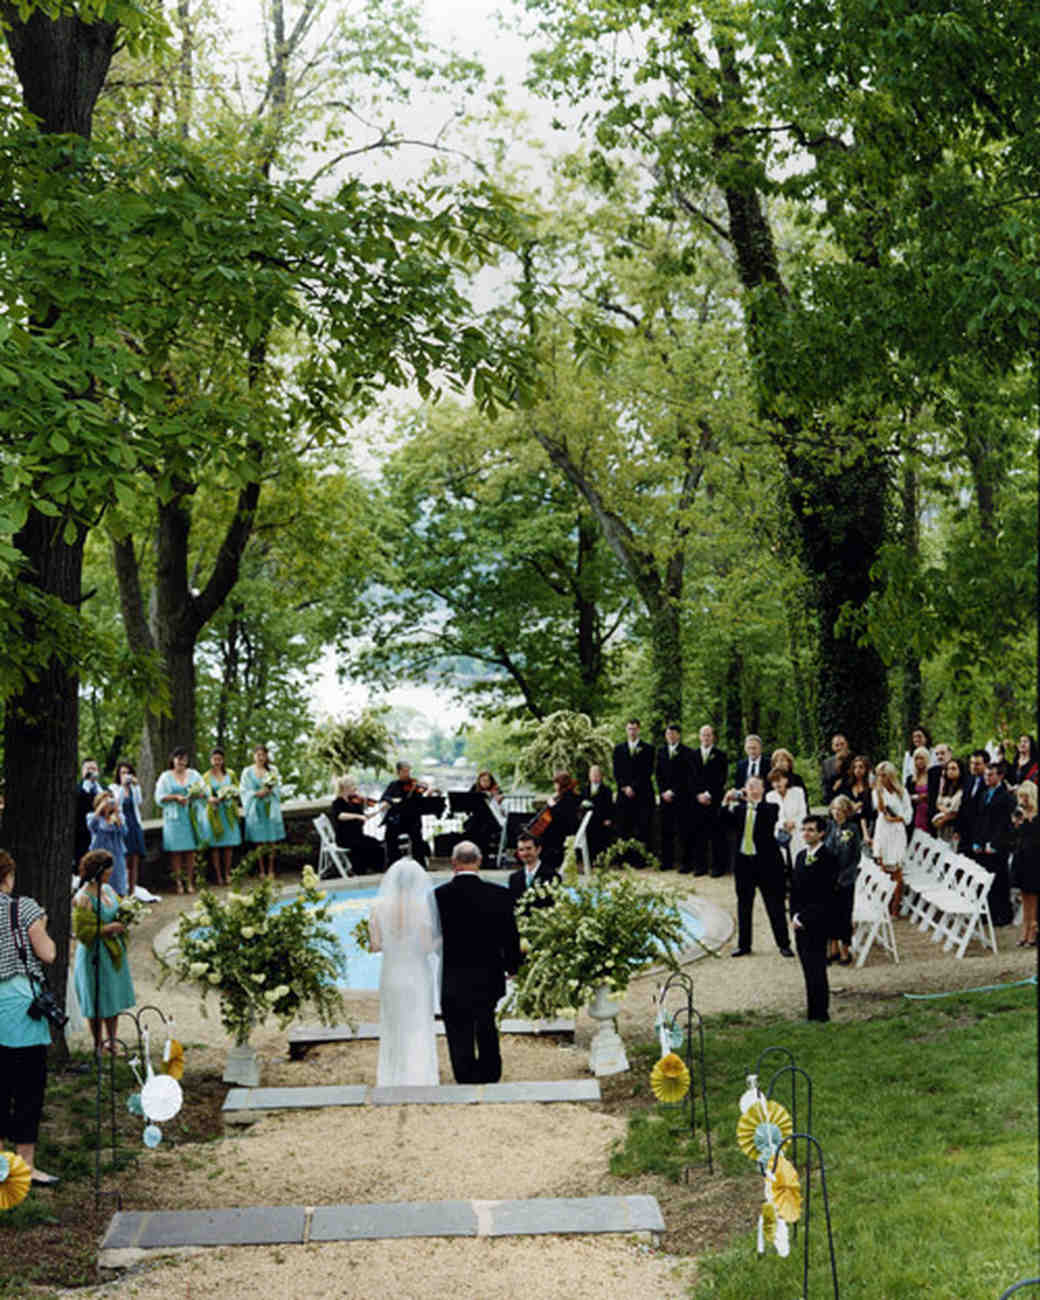 Unique Wedding Venues In Manchester: 14 Favorite Wedding Ceremony Locations On The East Coast